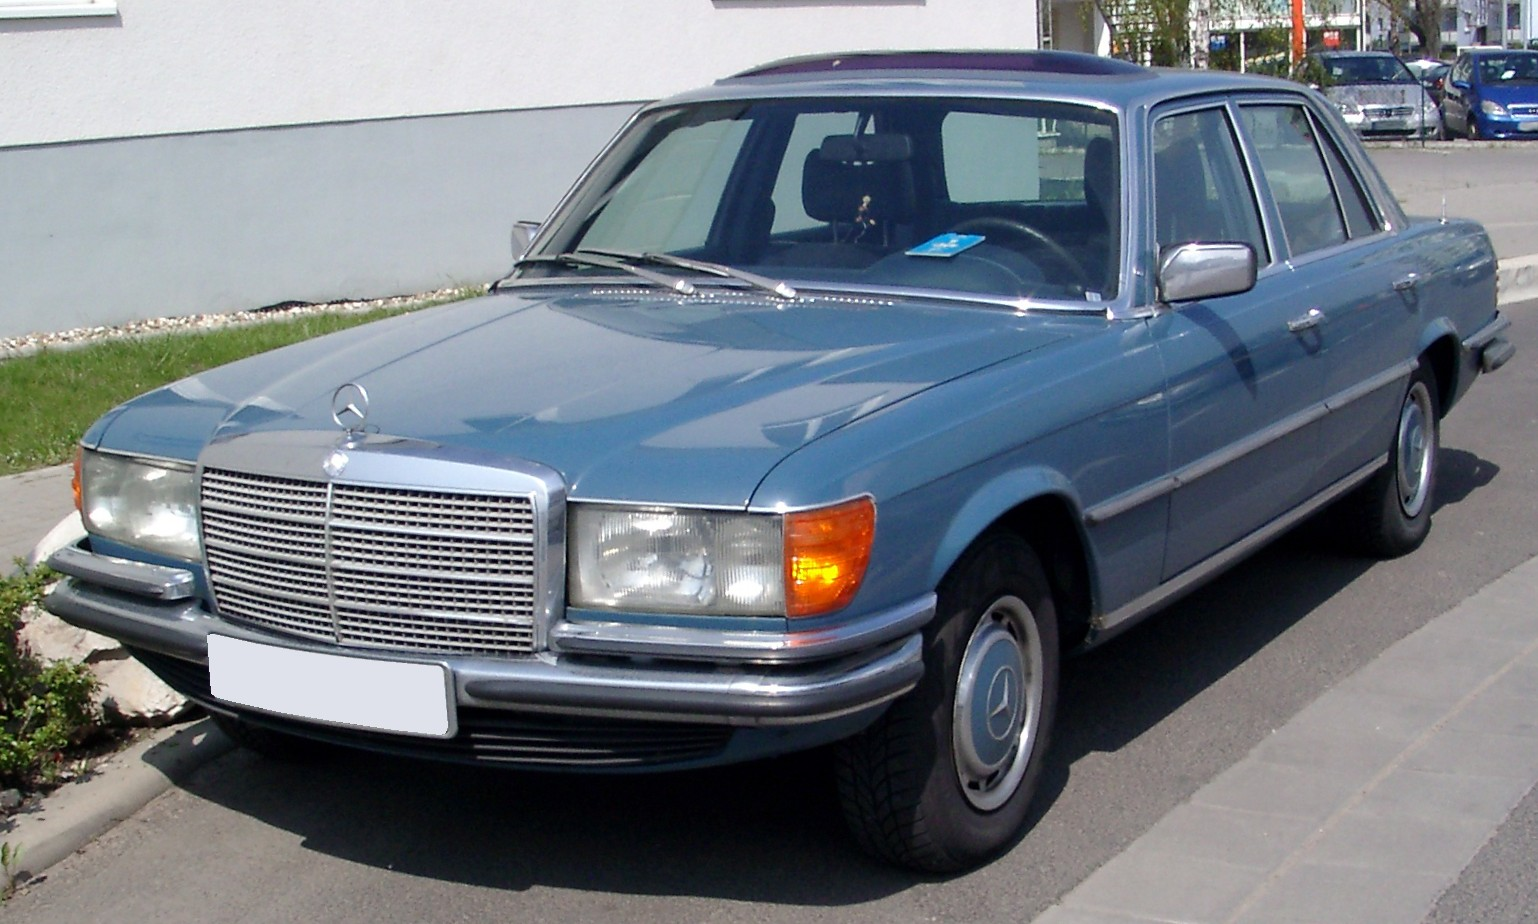 Mercedes-Benz W116 front HD Wallpaper Free Download Image Of